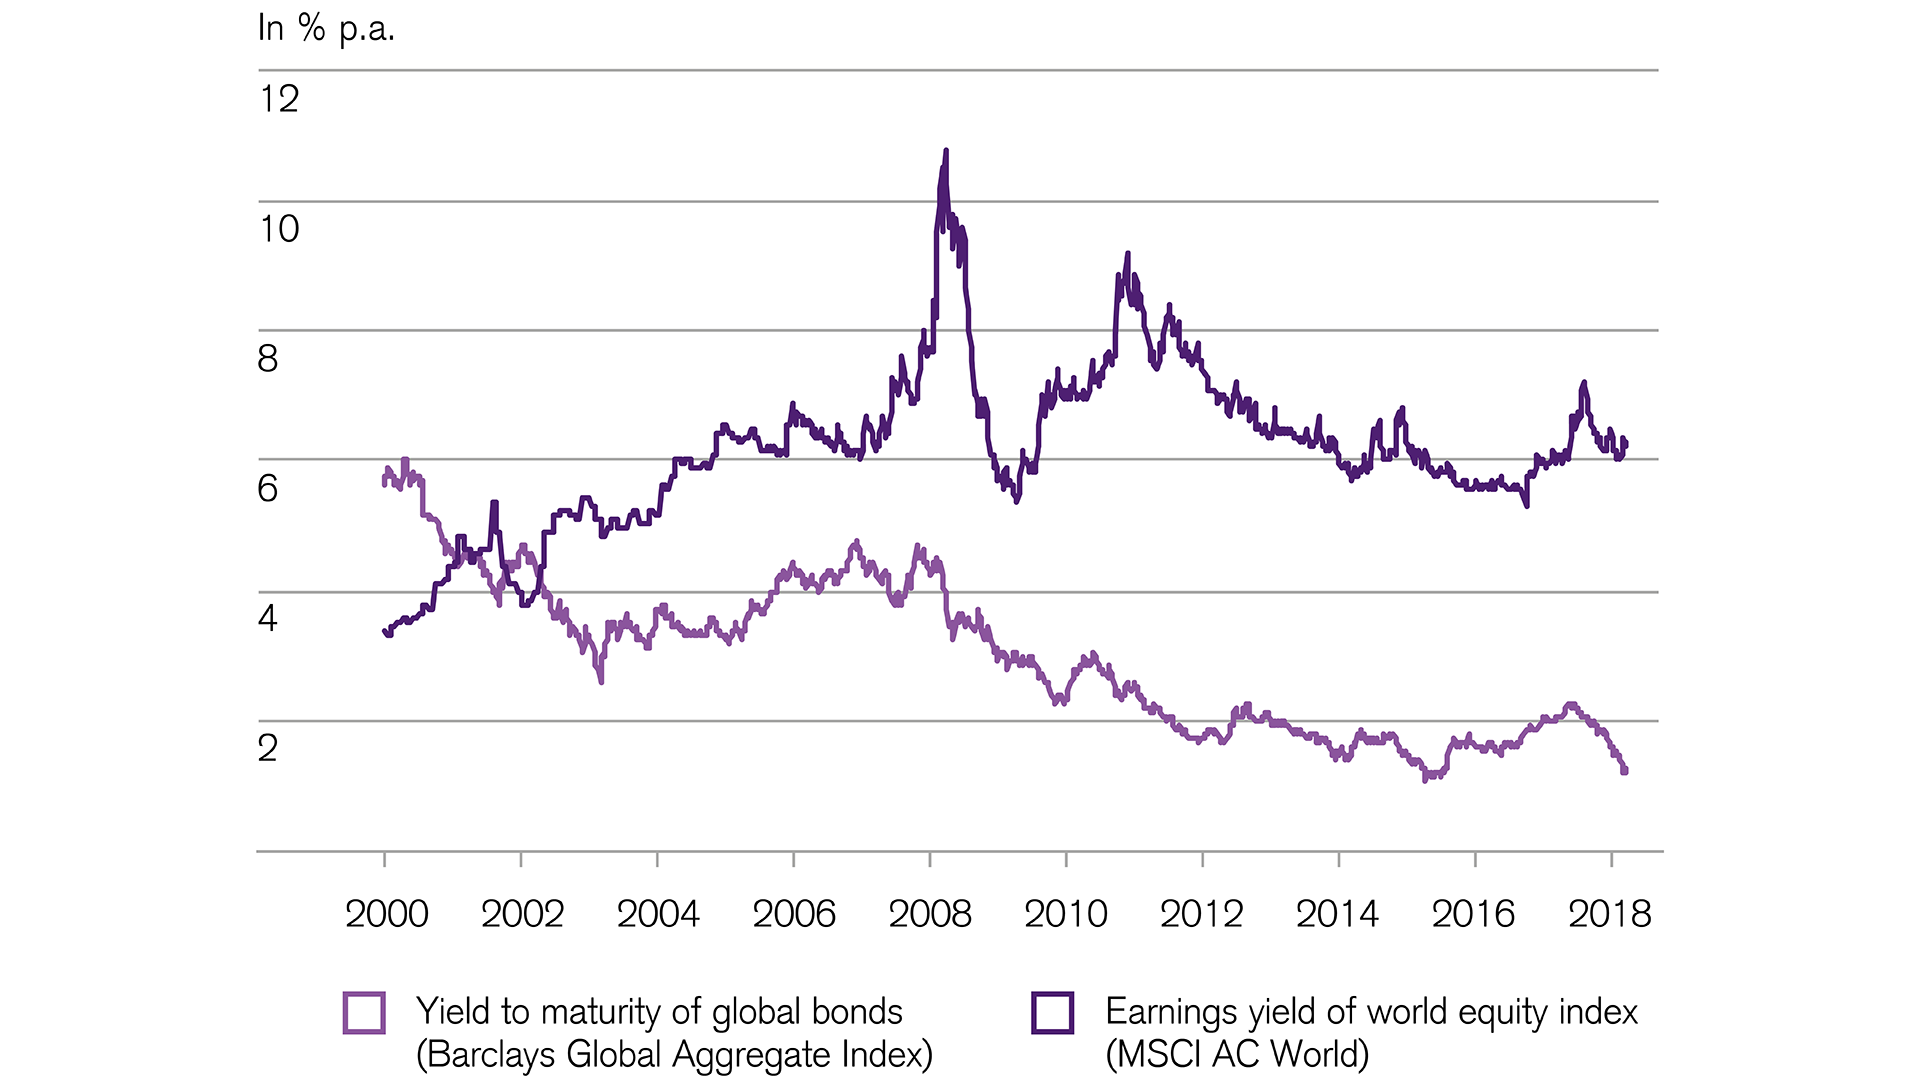 Return comparison equities and bonds